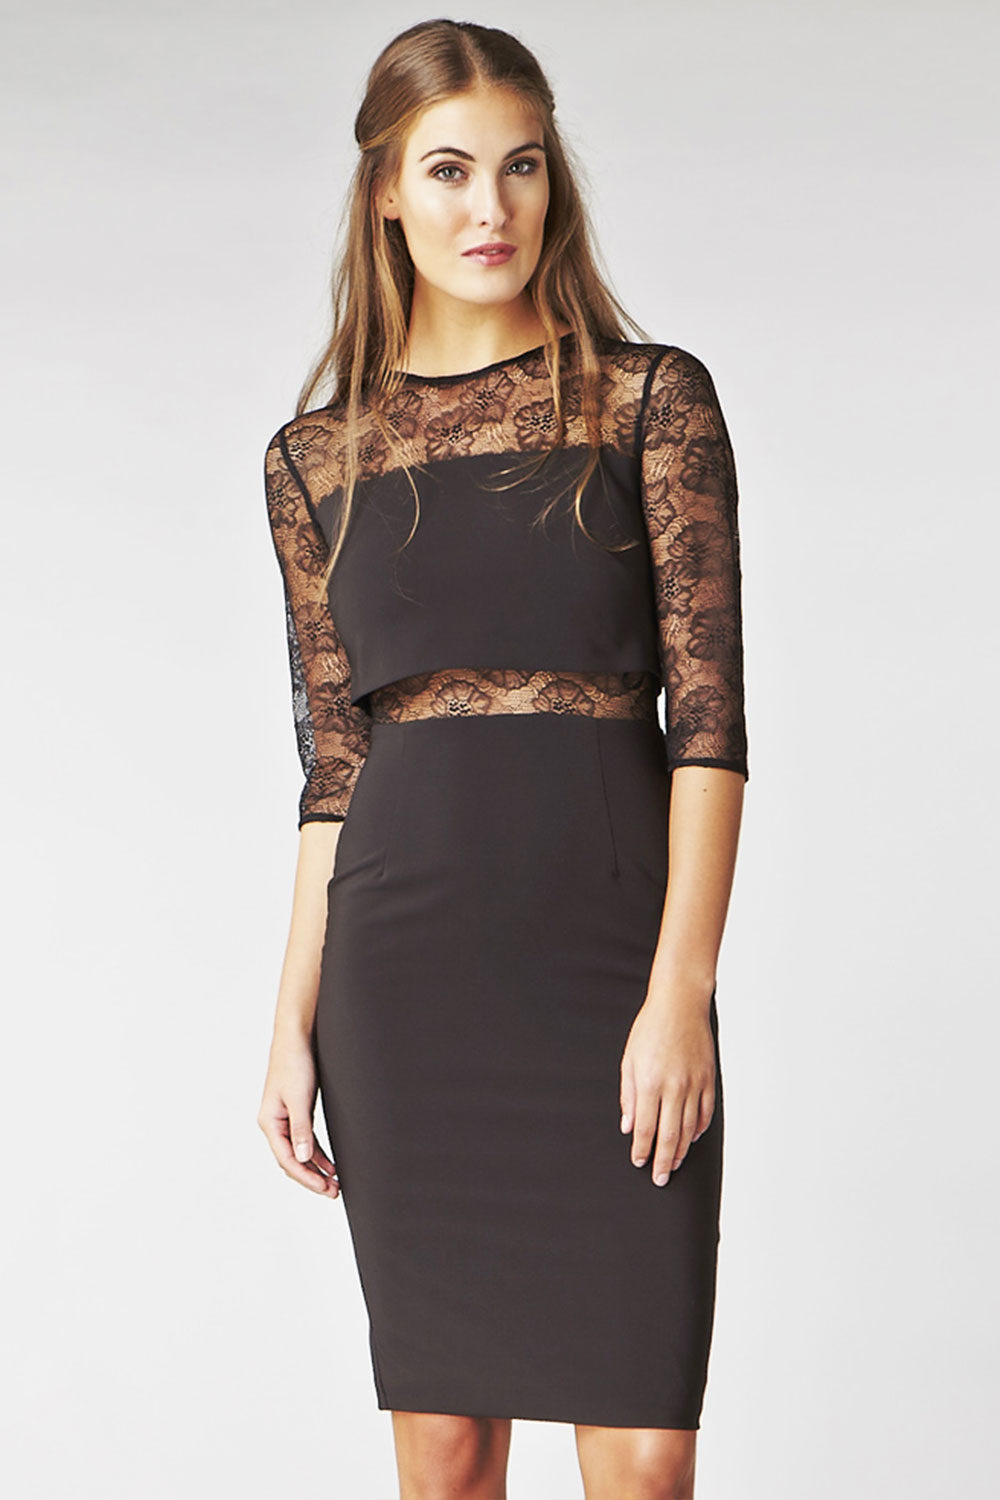 Hybrid Fashion 1126 Kusum Black Lace Pencil Dress